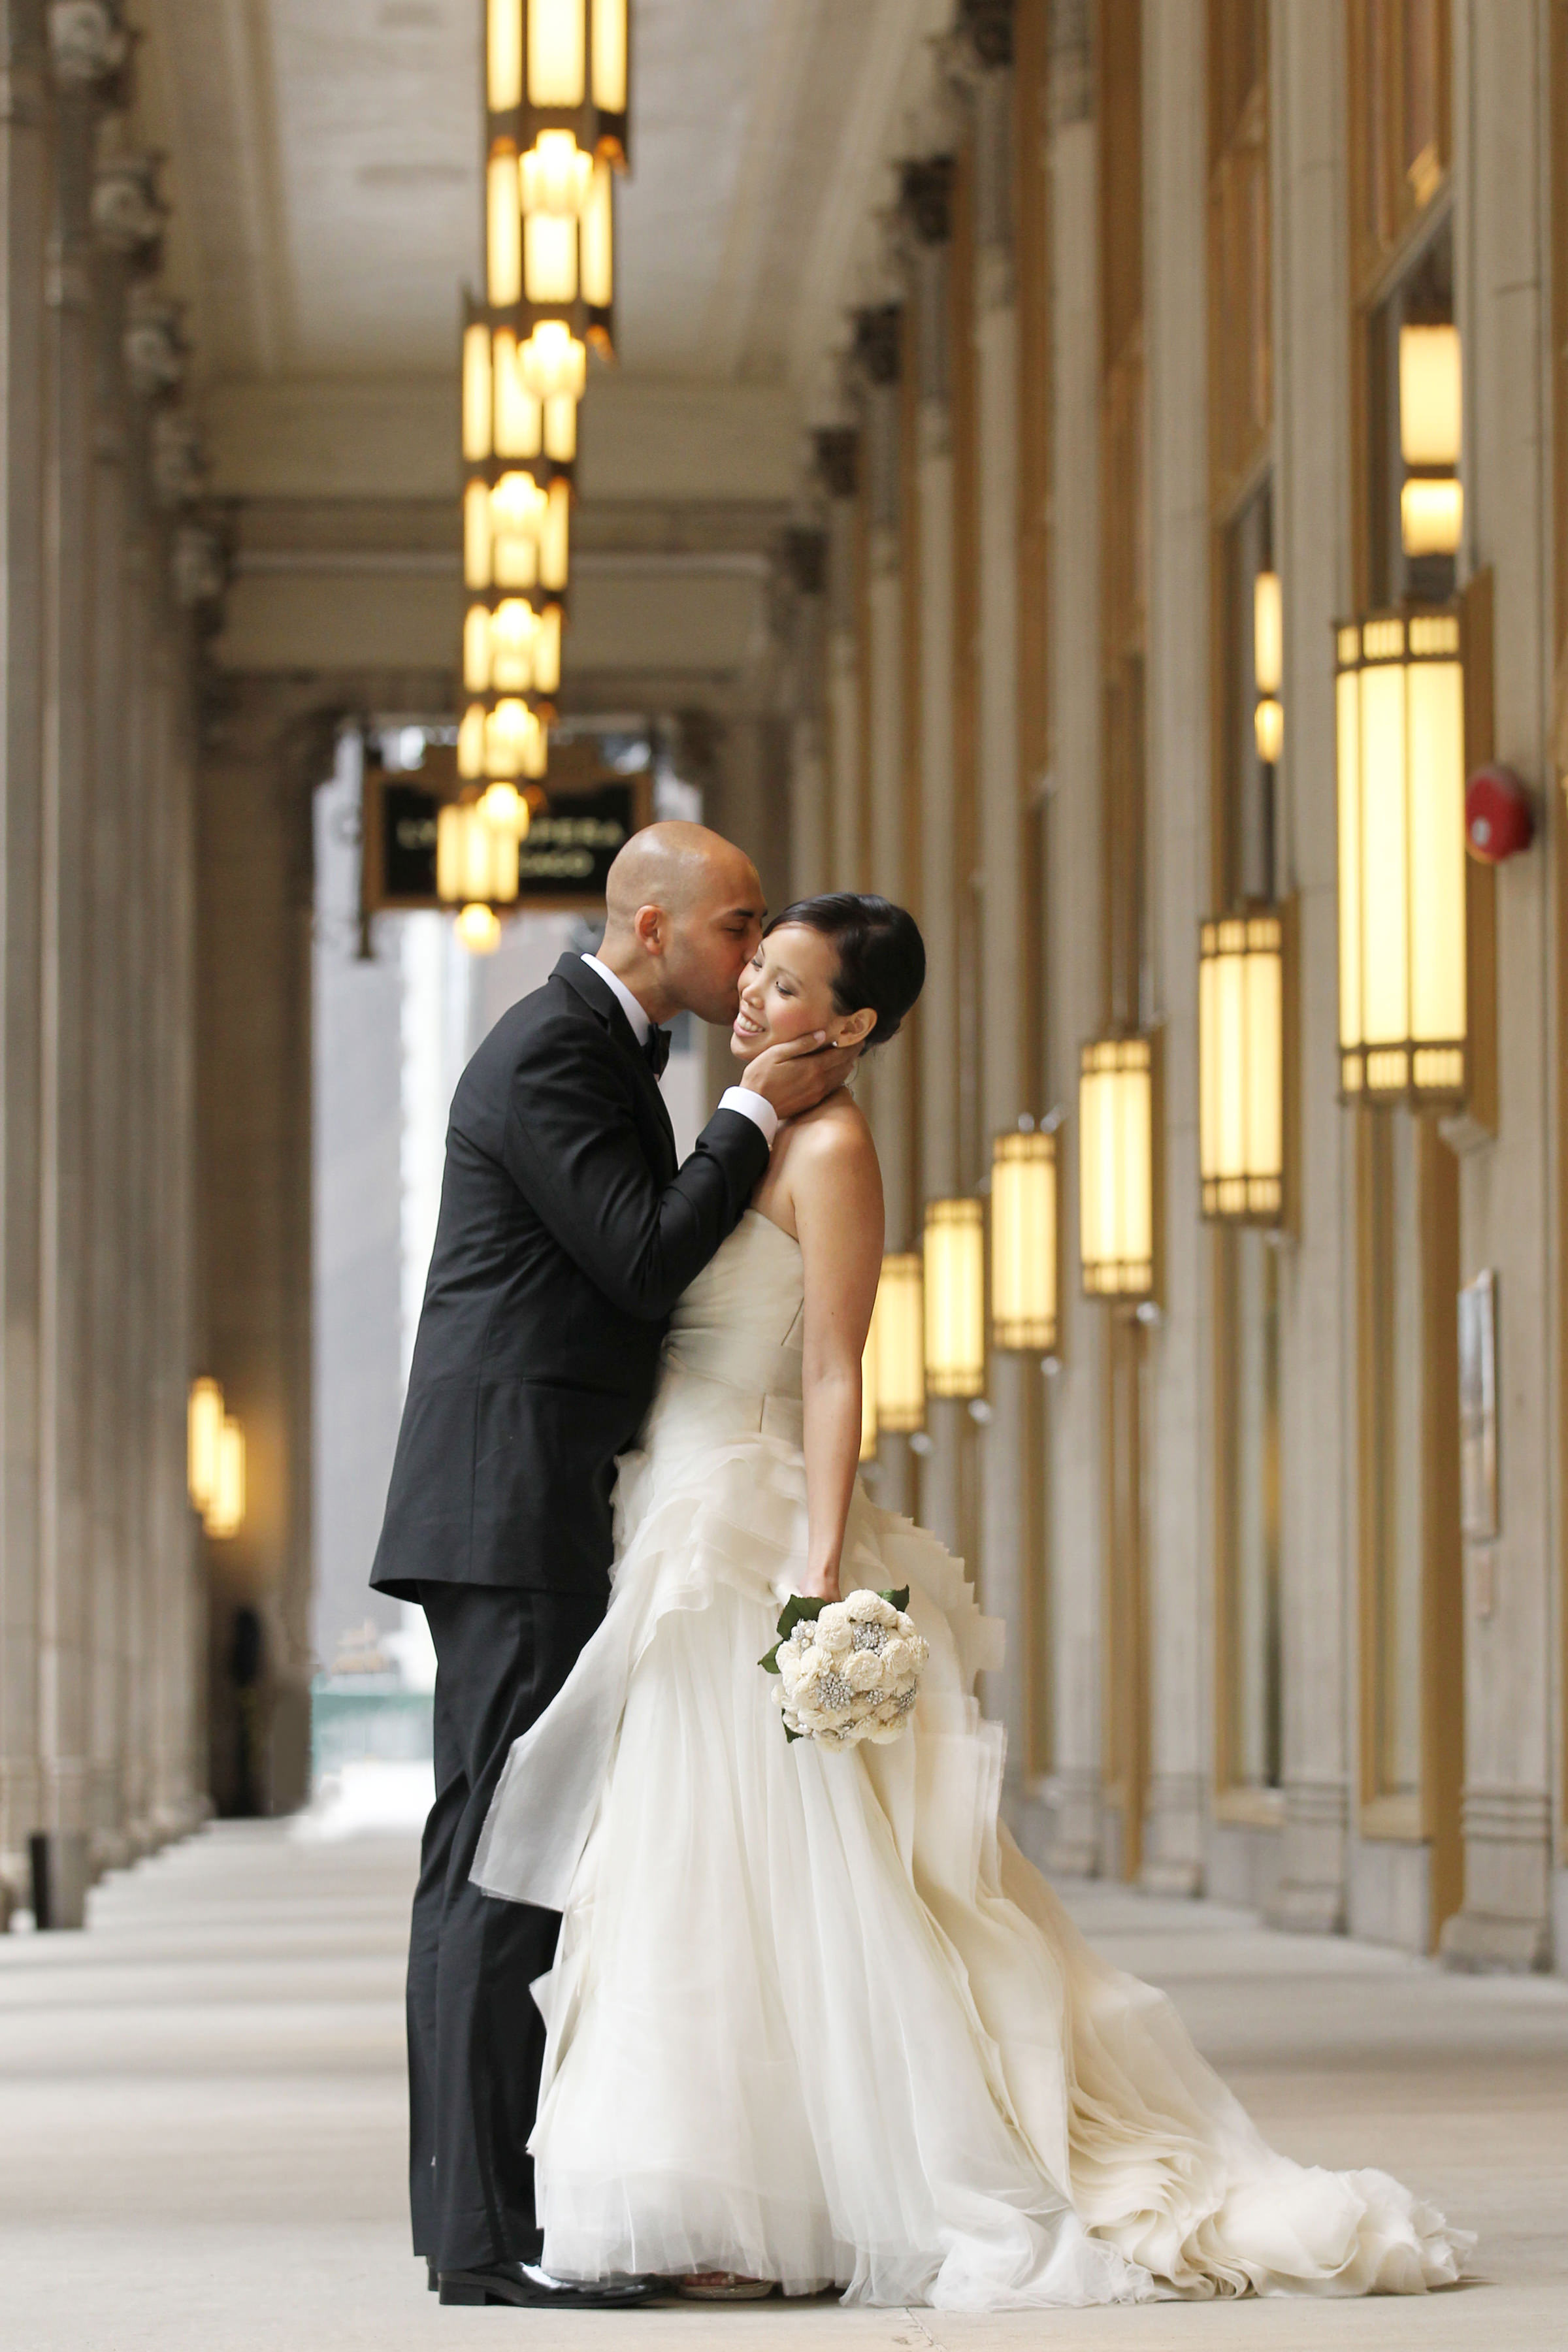 Kissing the bride against historic architecture - photo by Kenny Kim Photography